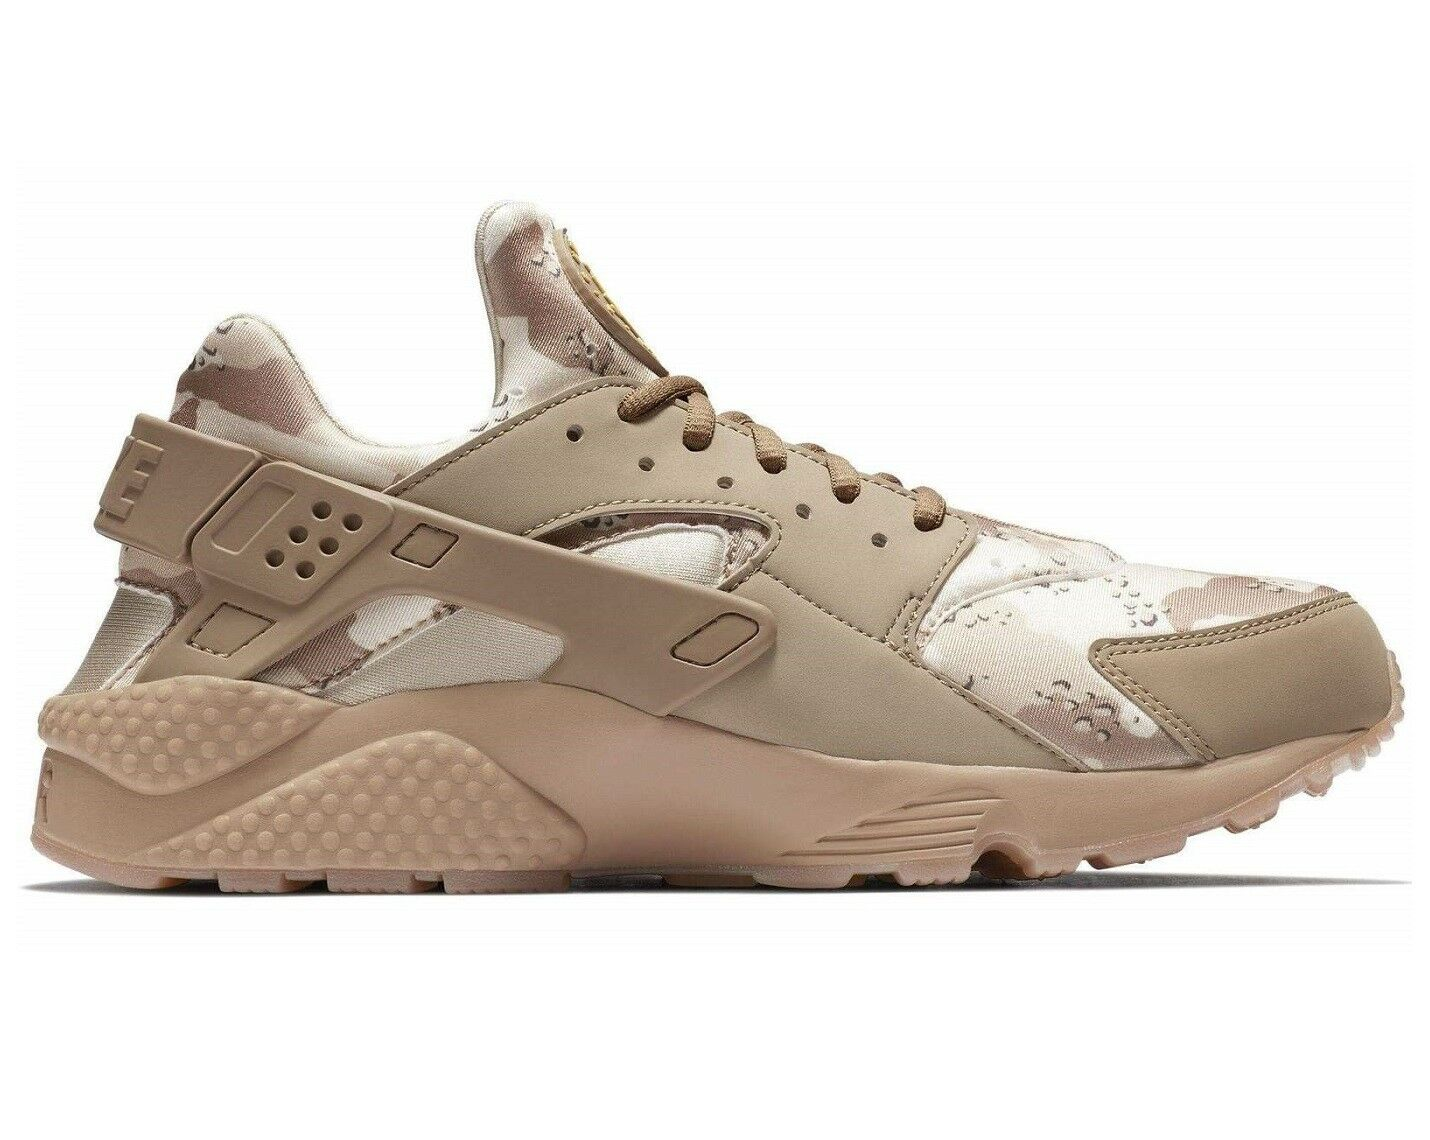 Nike Air Huarache Run Desert Camo Mens AT6156-200 Ochre Canteen Shoes Size 11